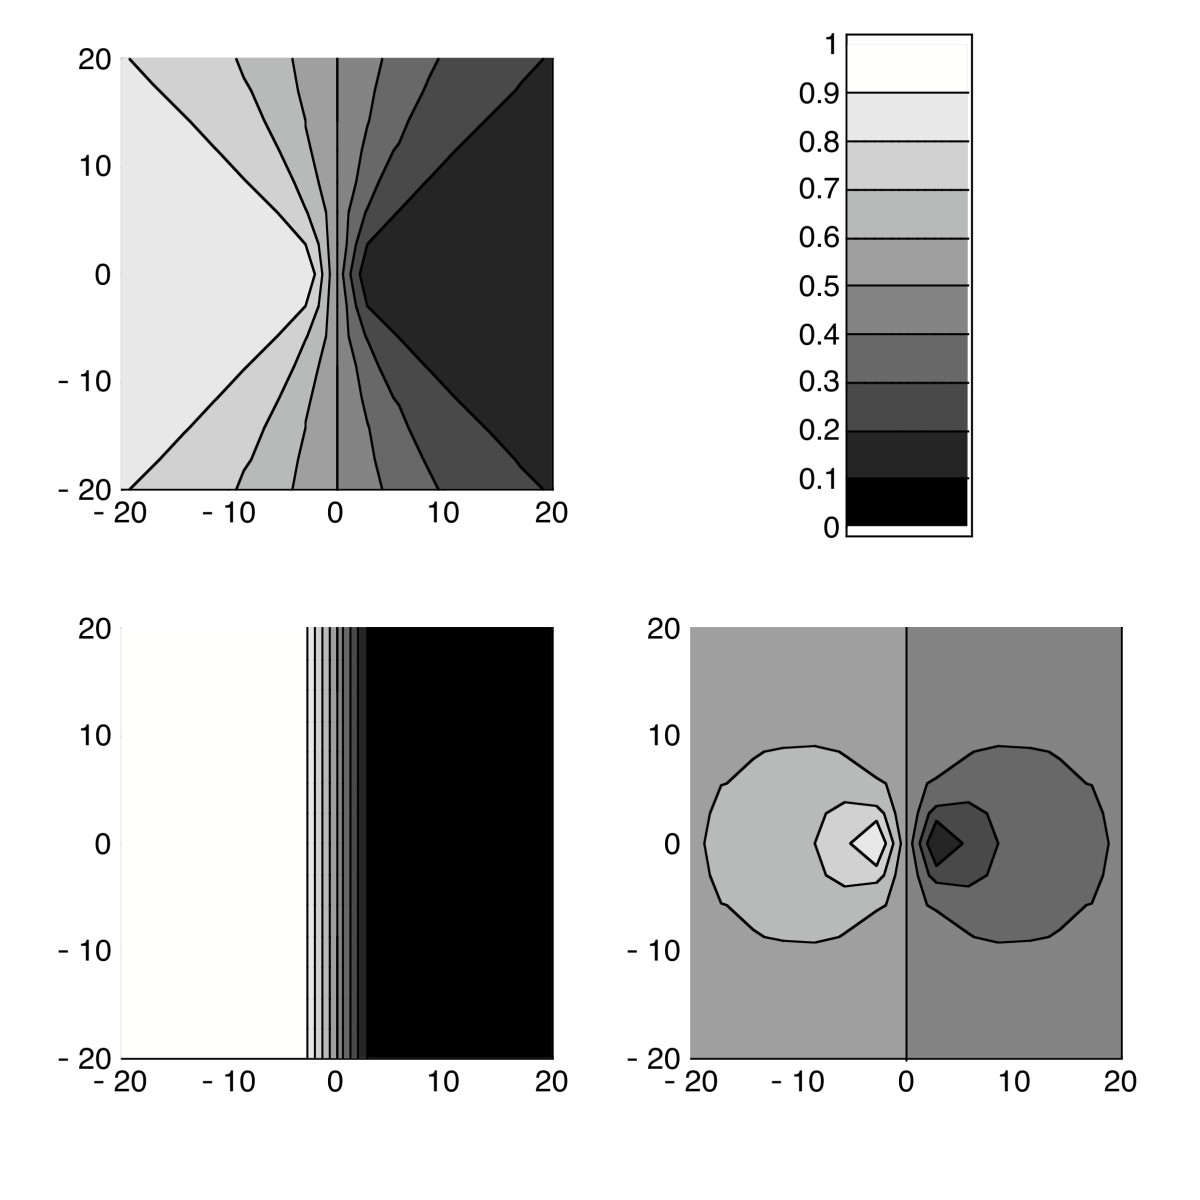 http://static-content.springer.com/image/art%3A10.1186%2F1472-6785-6-3/MediaObjects/12898_2005_Article_56_Fig3_HTML.jpg